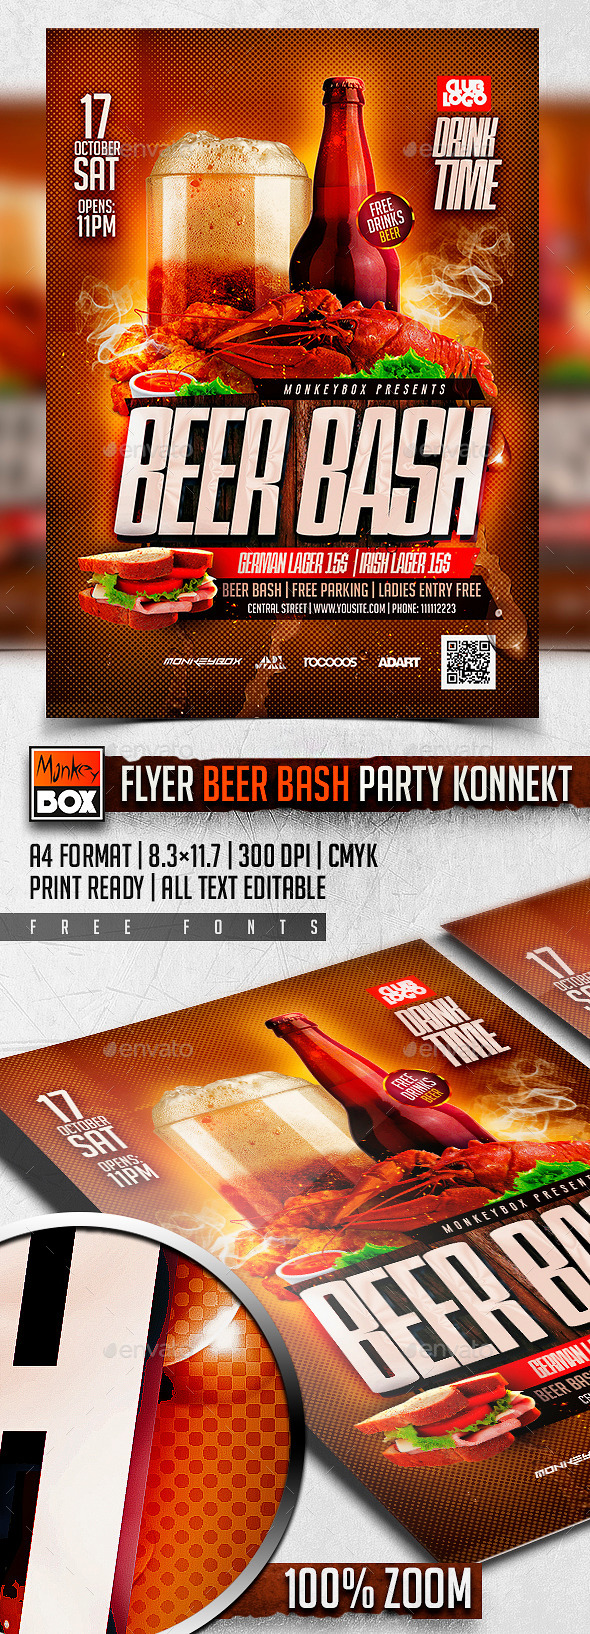 Flyer Beer Bash Party Konnekt